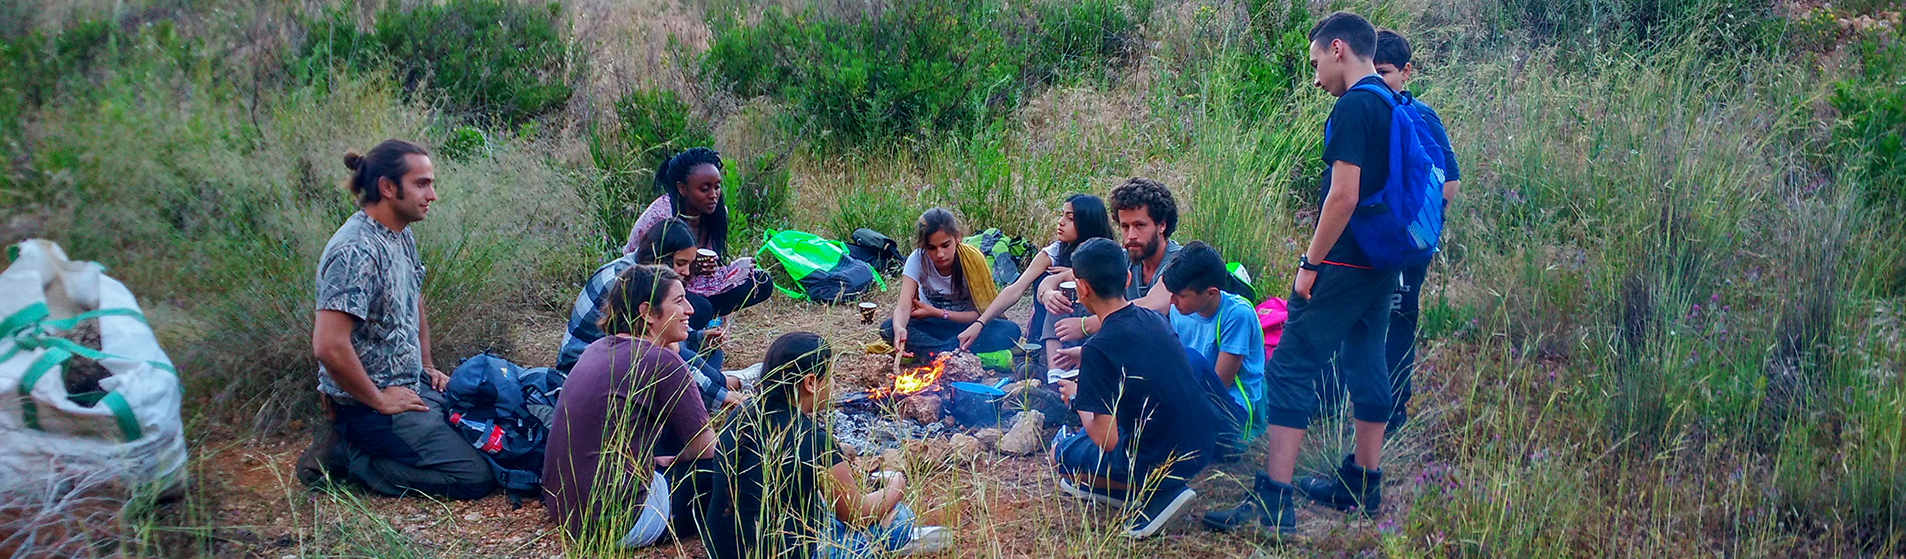 students activity in nature